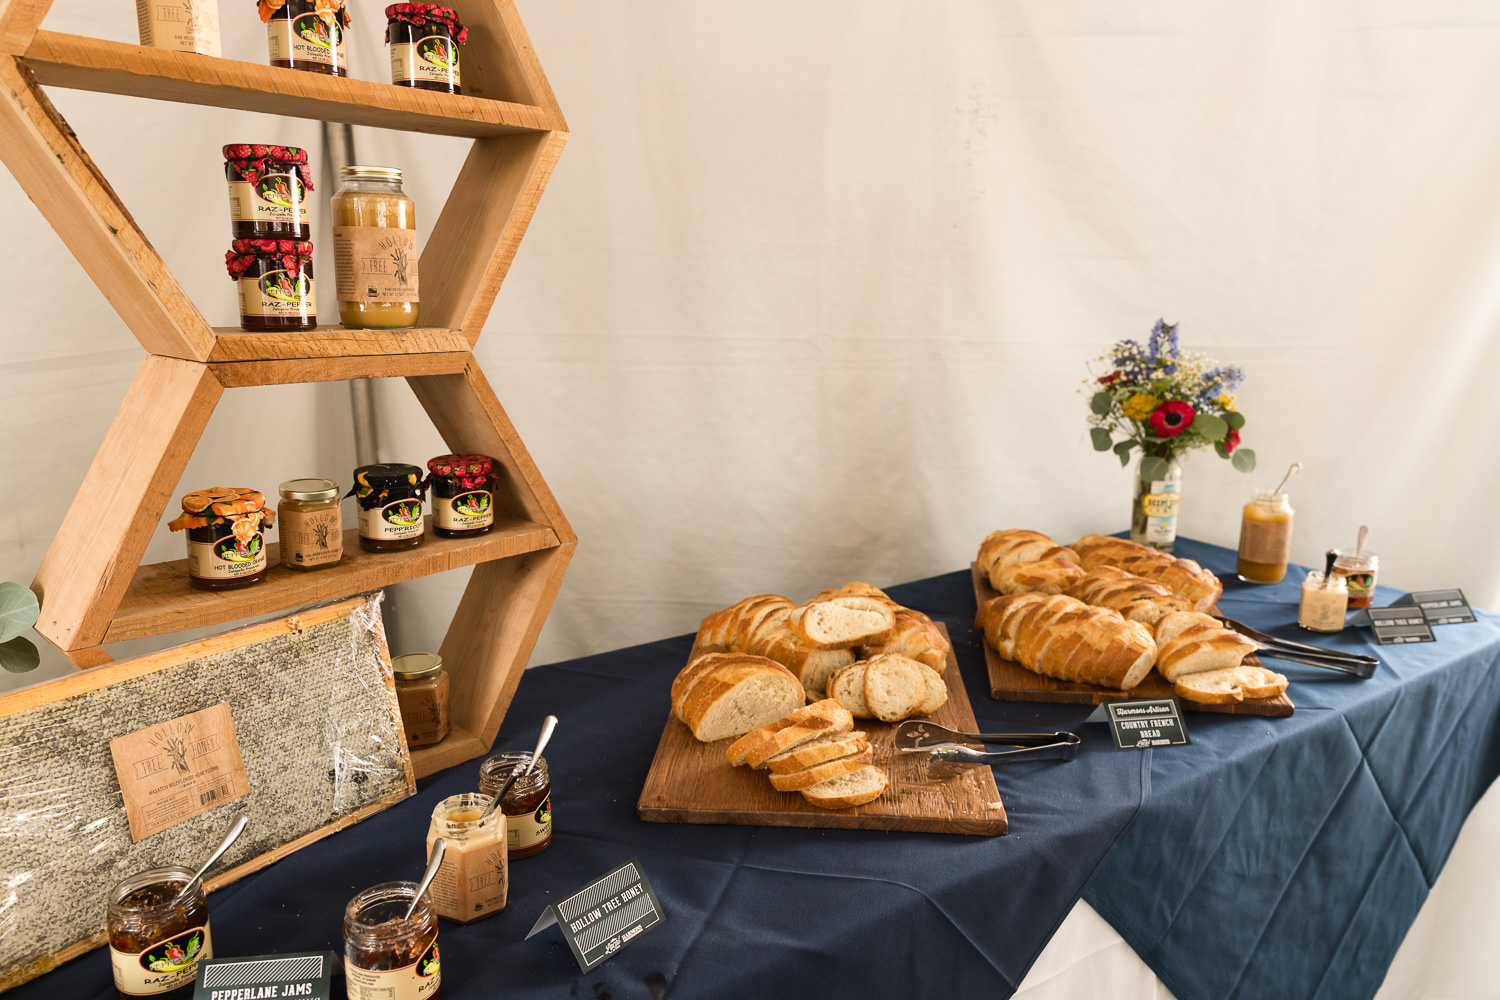 Breads, jams and butter are available to VIPS courtesy of Harmon's. Photo: Lmsorenson.net